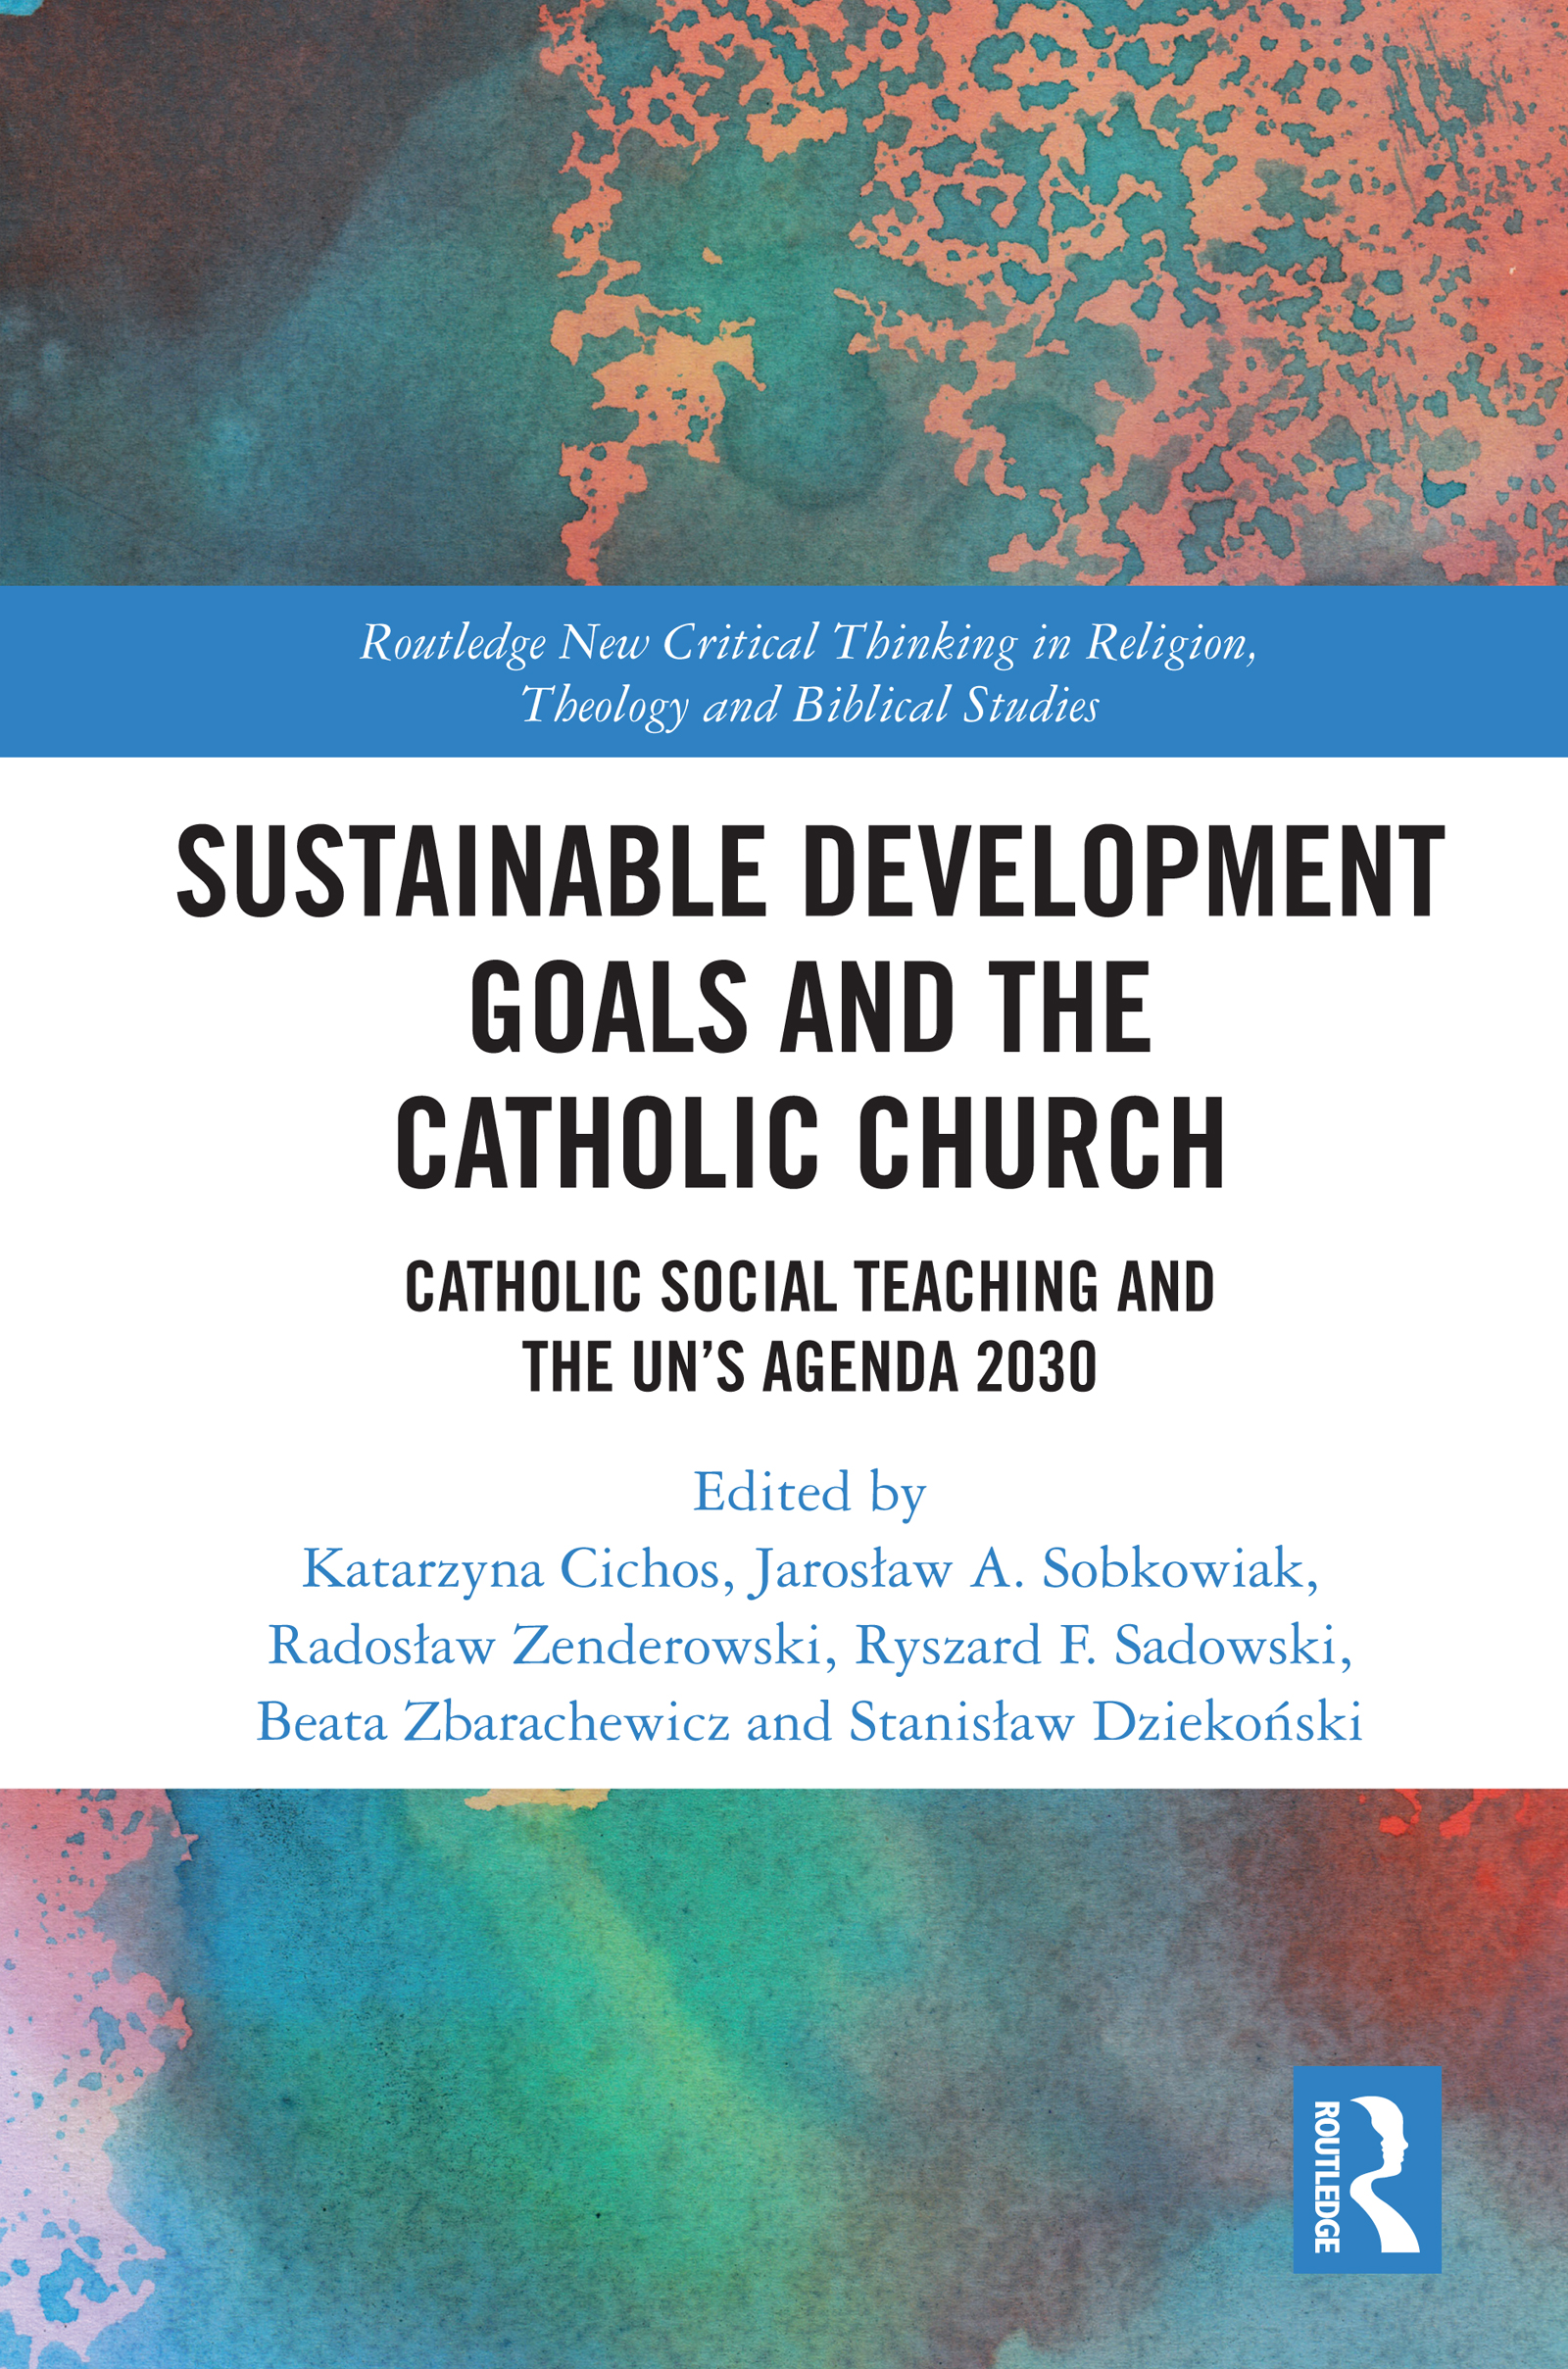 Decent work and economic growth from the perspective of sustainable development and Catholic social teaching